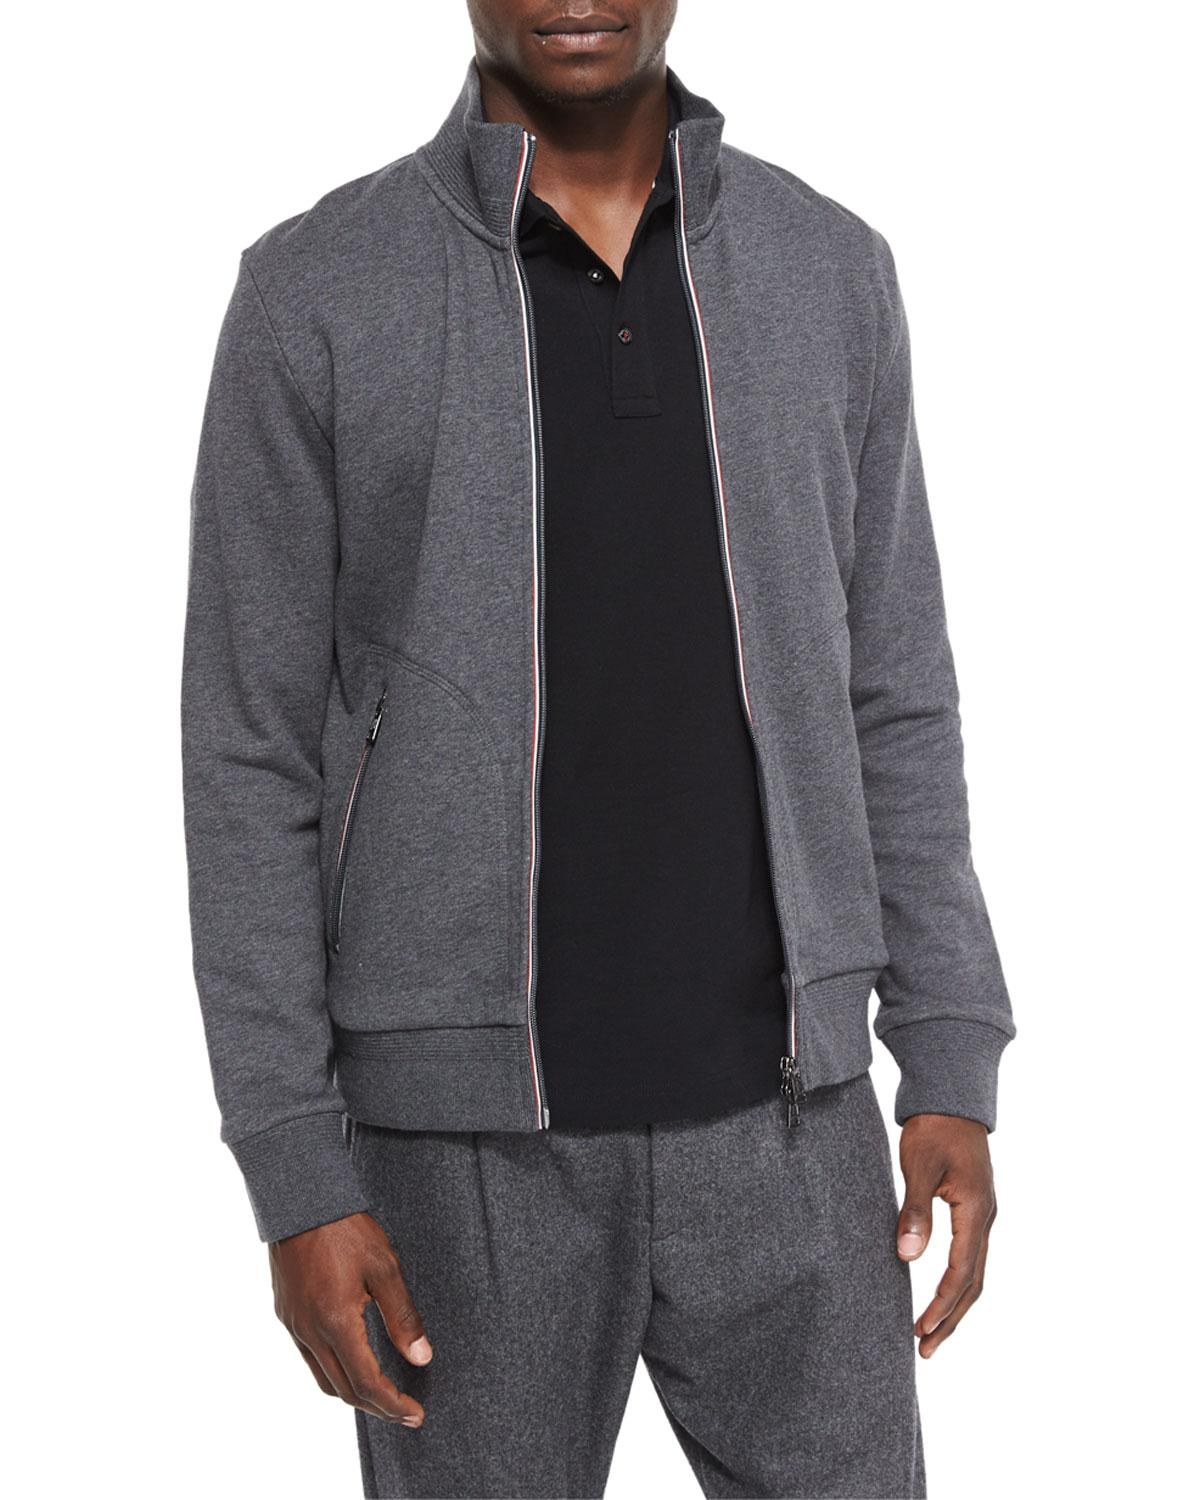 435228a4ff34 Lyst - Moncler Full-zip Track Jacket in Gray for Men